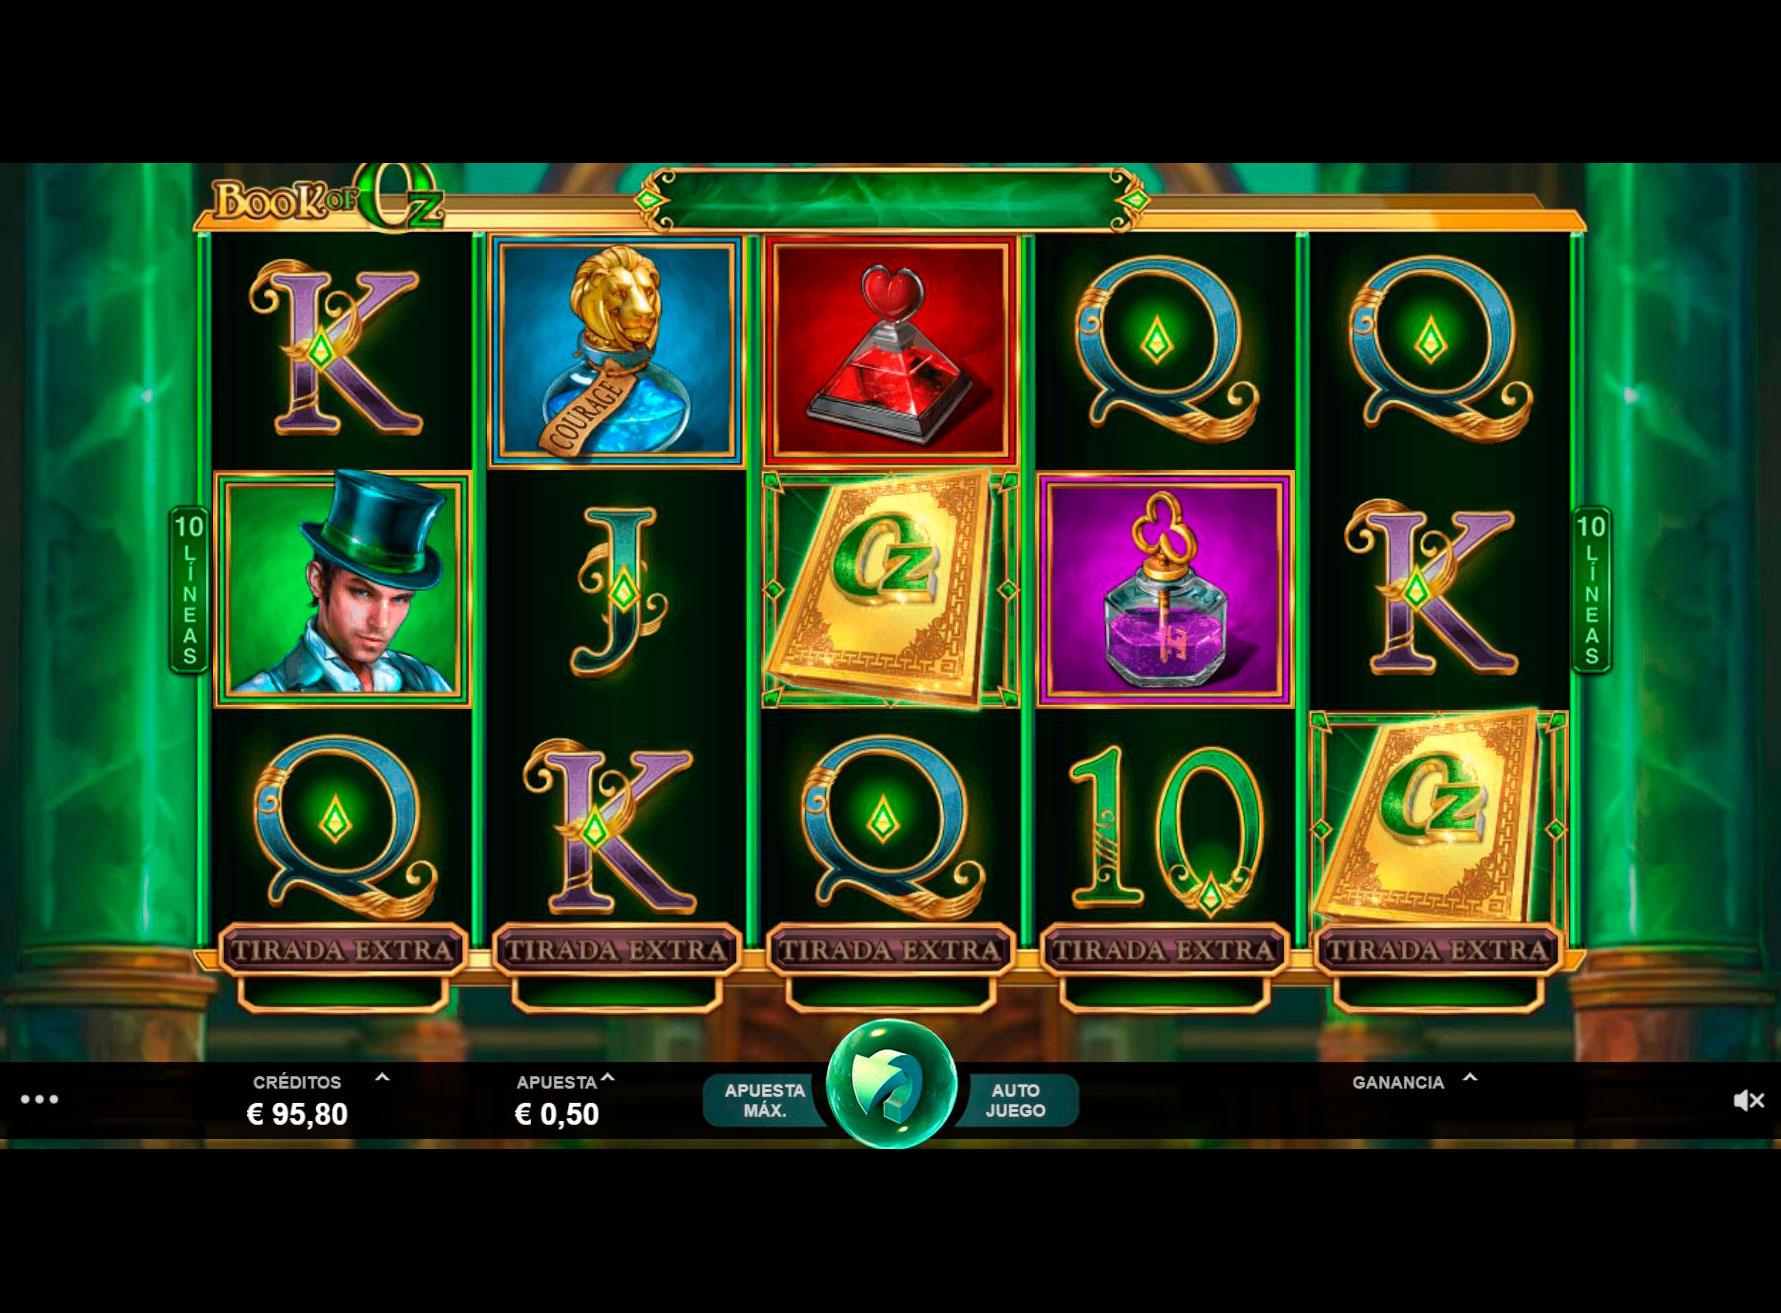 Slot Book of Oz